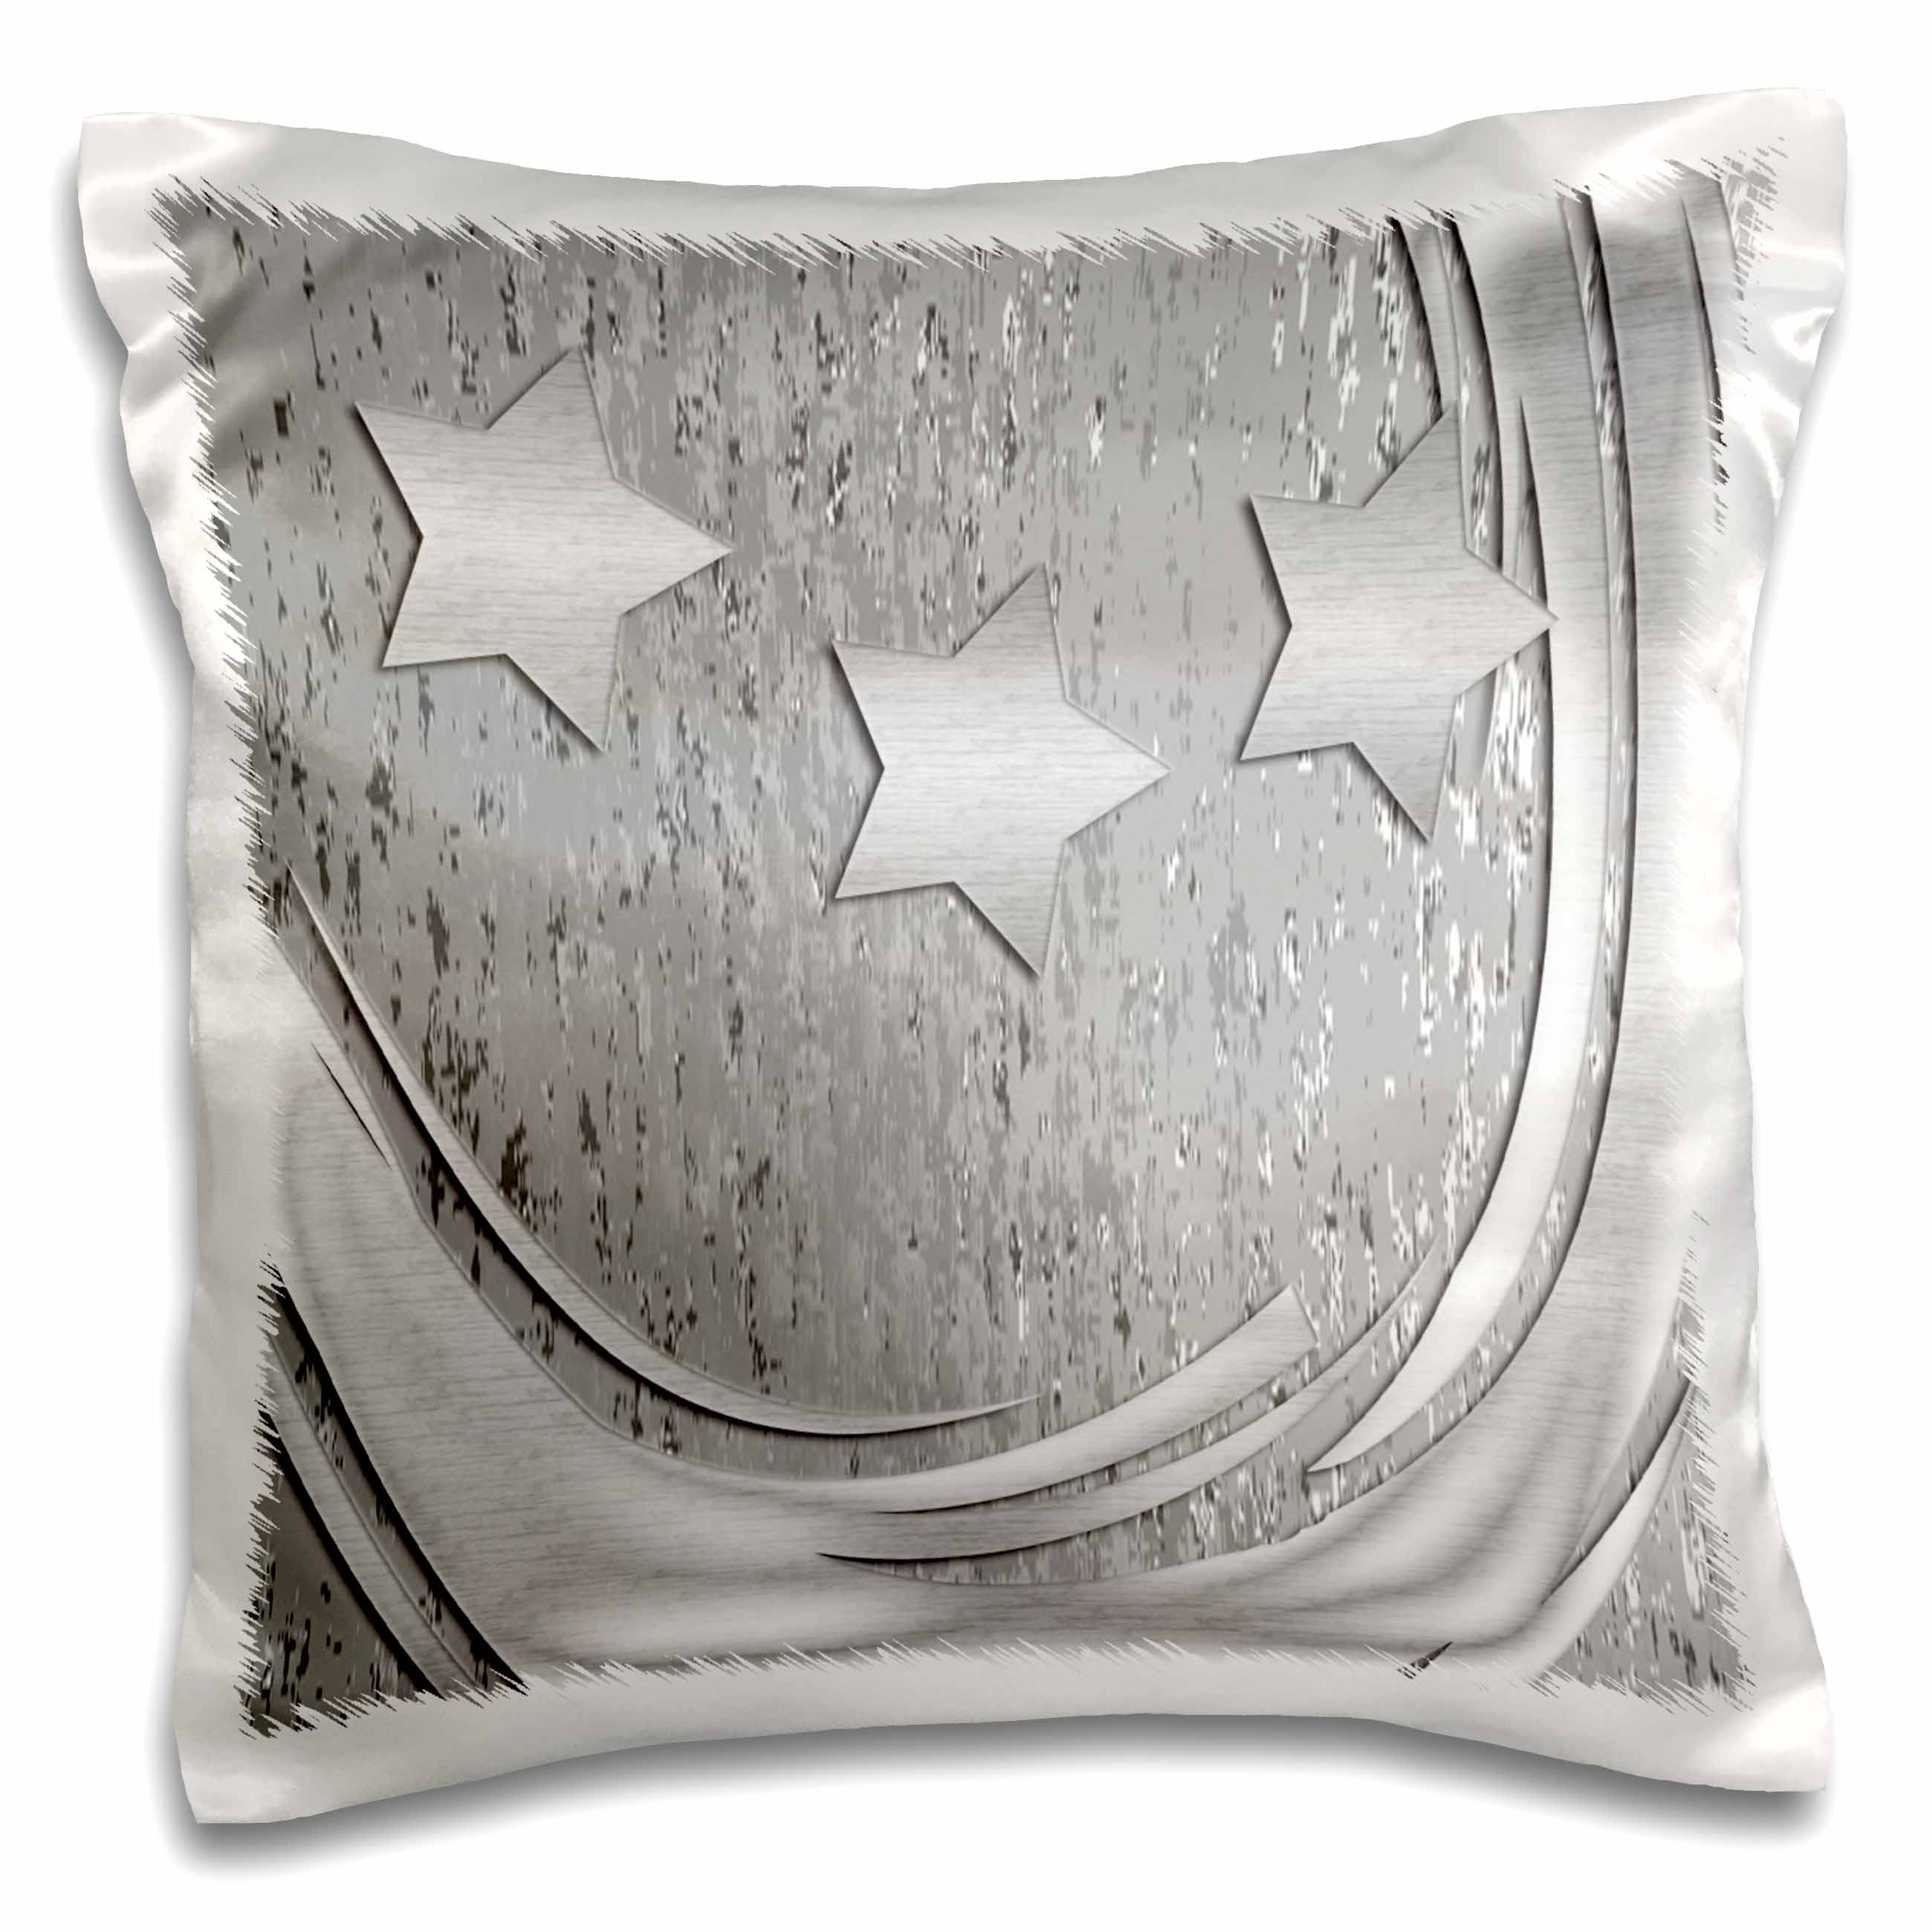 3dRose Three Silver Stars with Swirl, Pillow Case, 16 by 16-inch